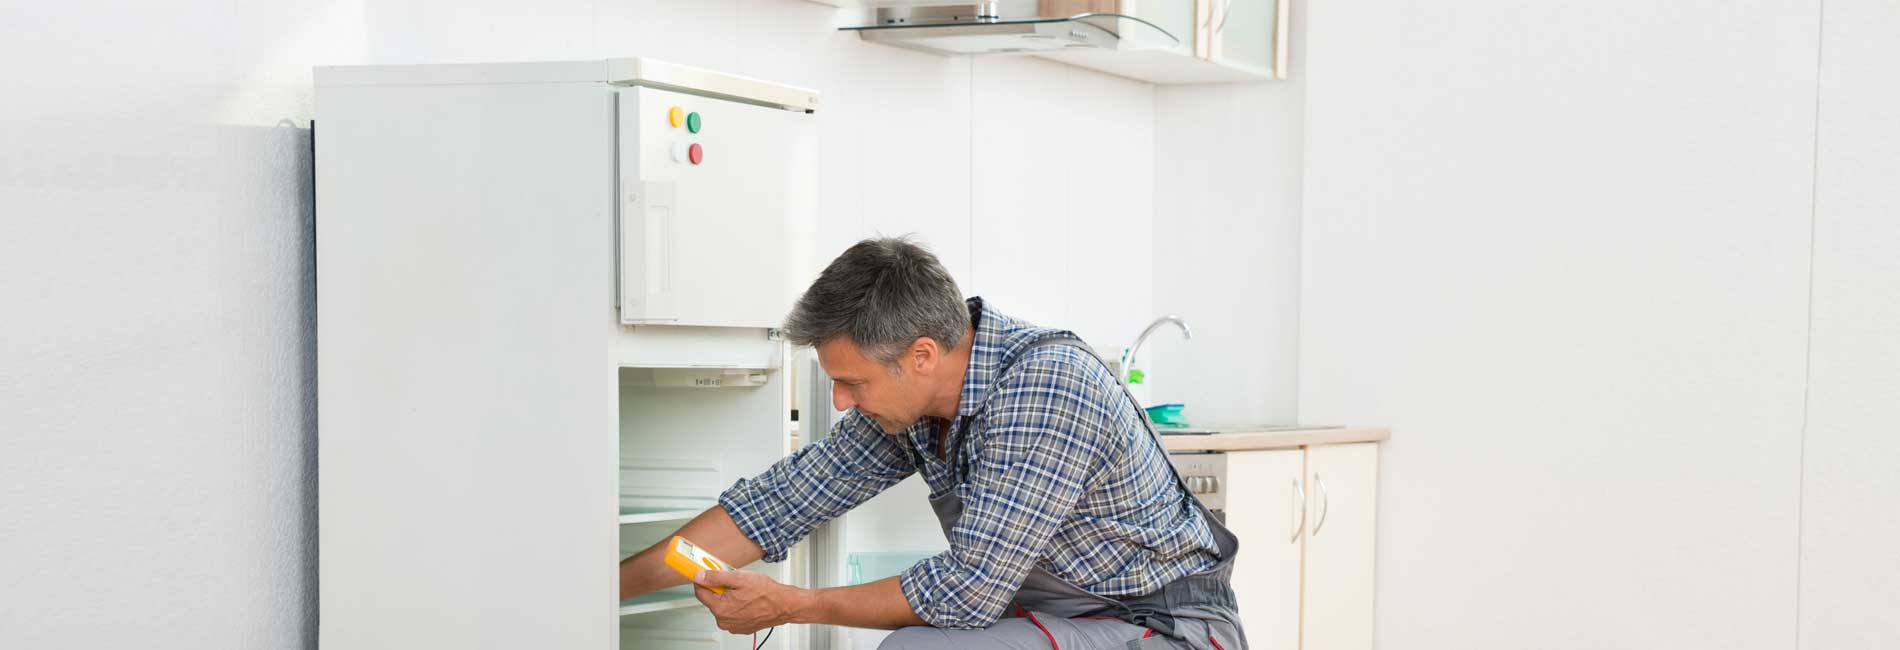 Kenstar Fridge Repair in Royapuram